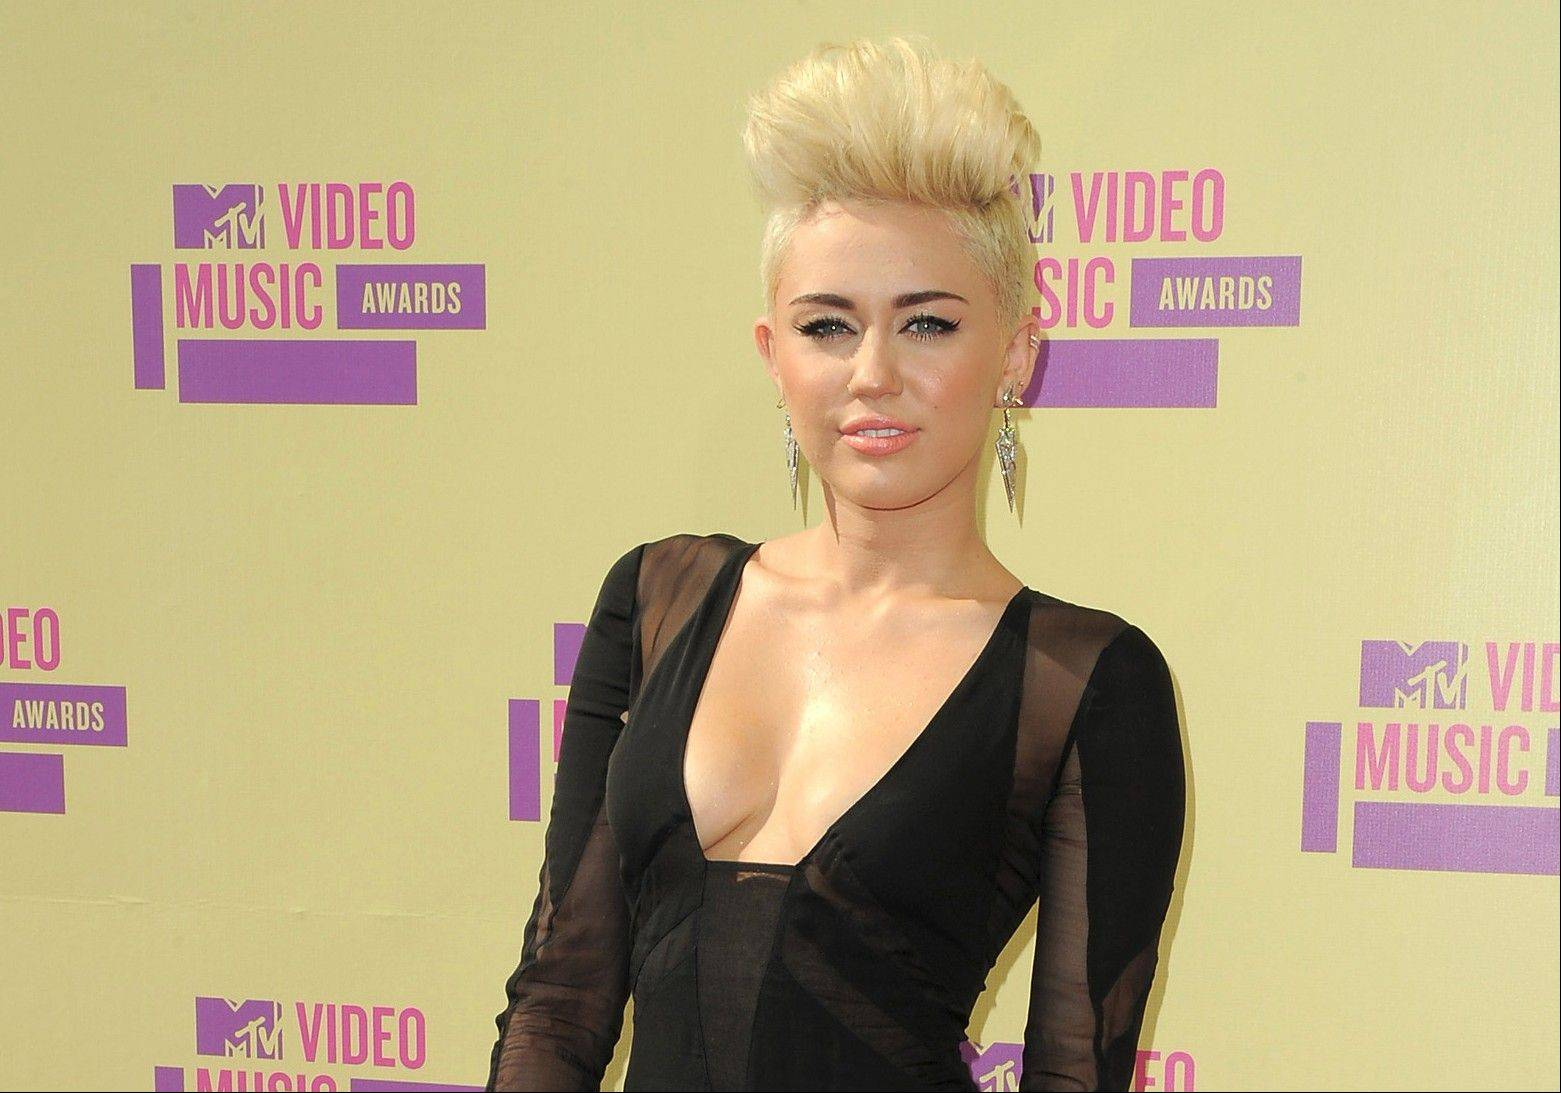 In this Sept. 6, 2012 file photo, Miley Cyrus attends the MTV Video Music Awards in Los Angeles. When Cyrus cut off the long hair her fans had become used to, she took some heat. She has said (and tweeted) repeatedly, though, that she was pleased with the new punk-pixie look and was sticking with it.